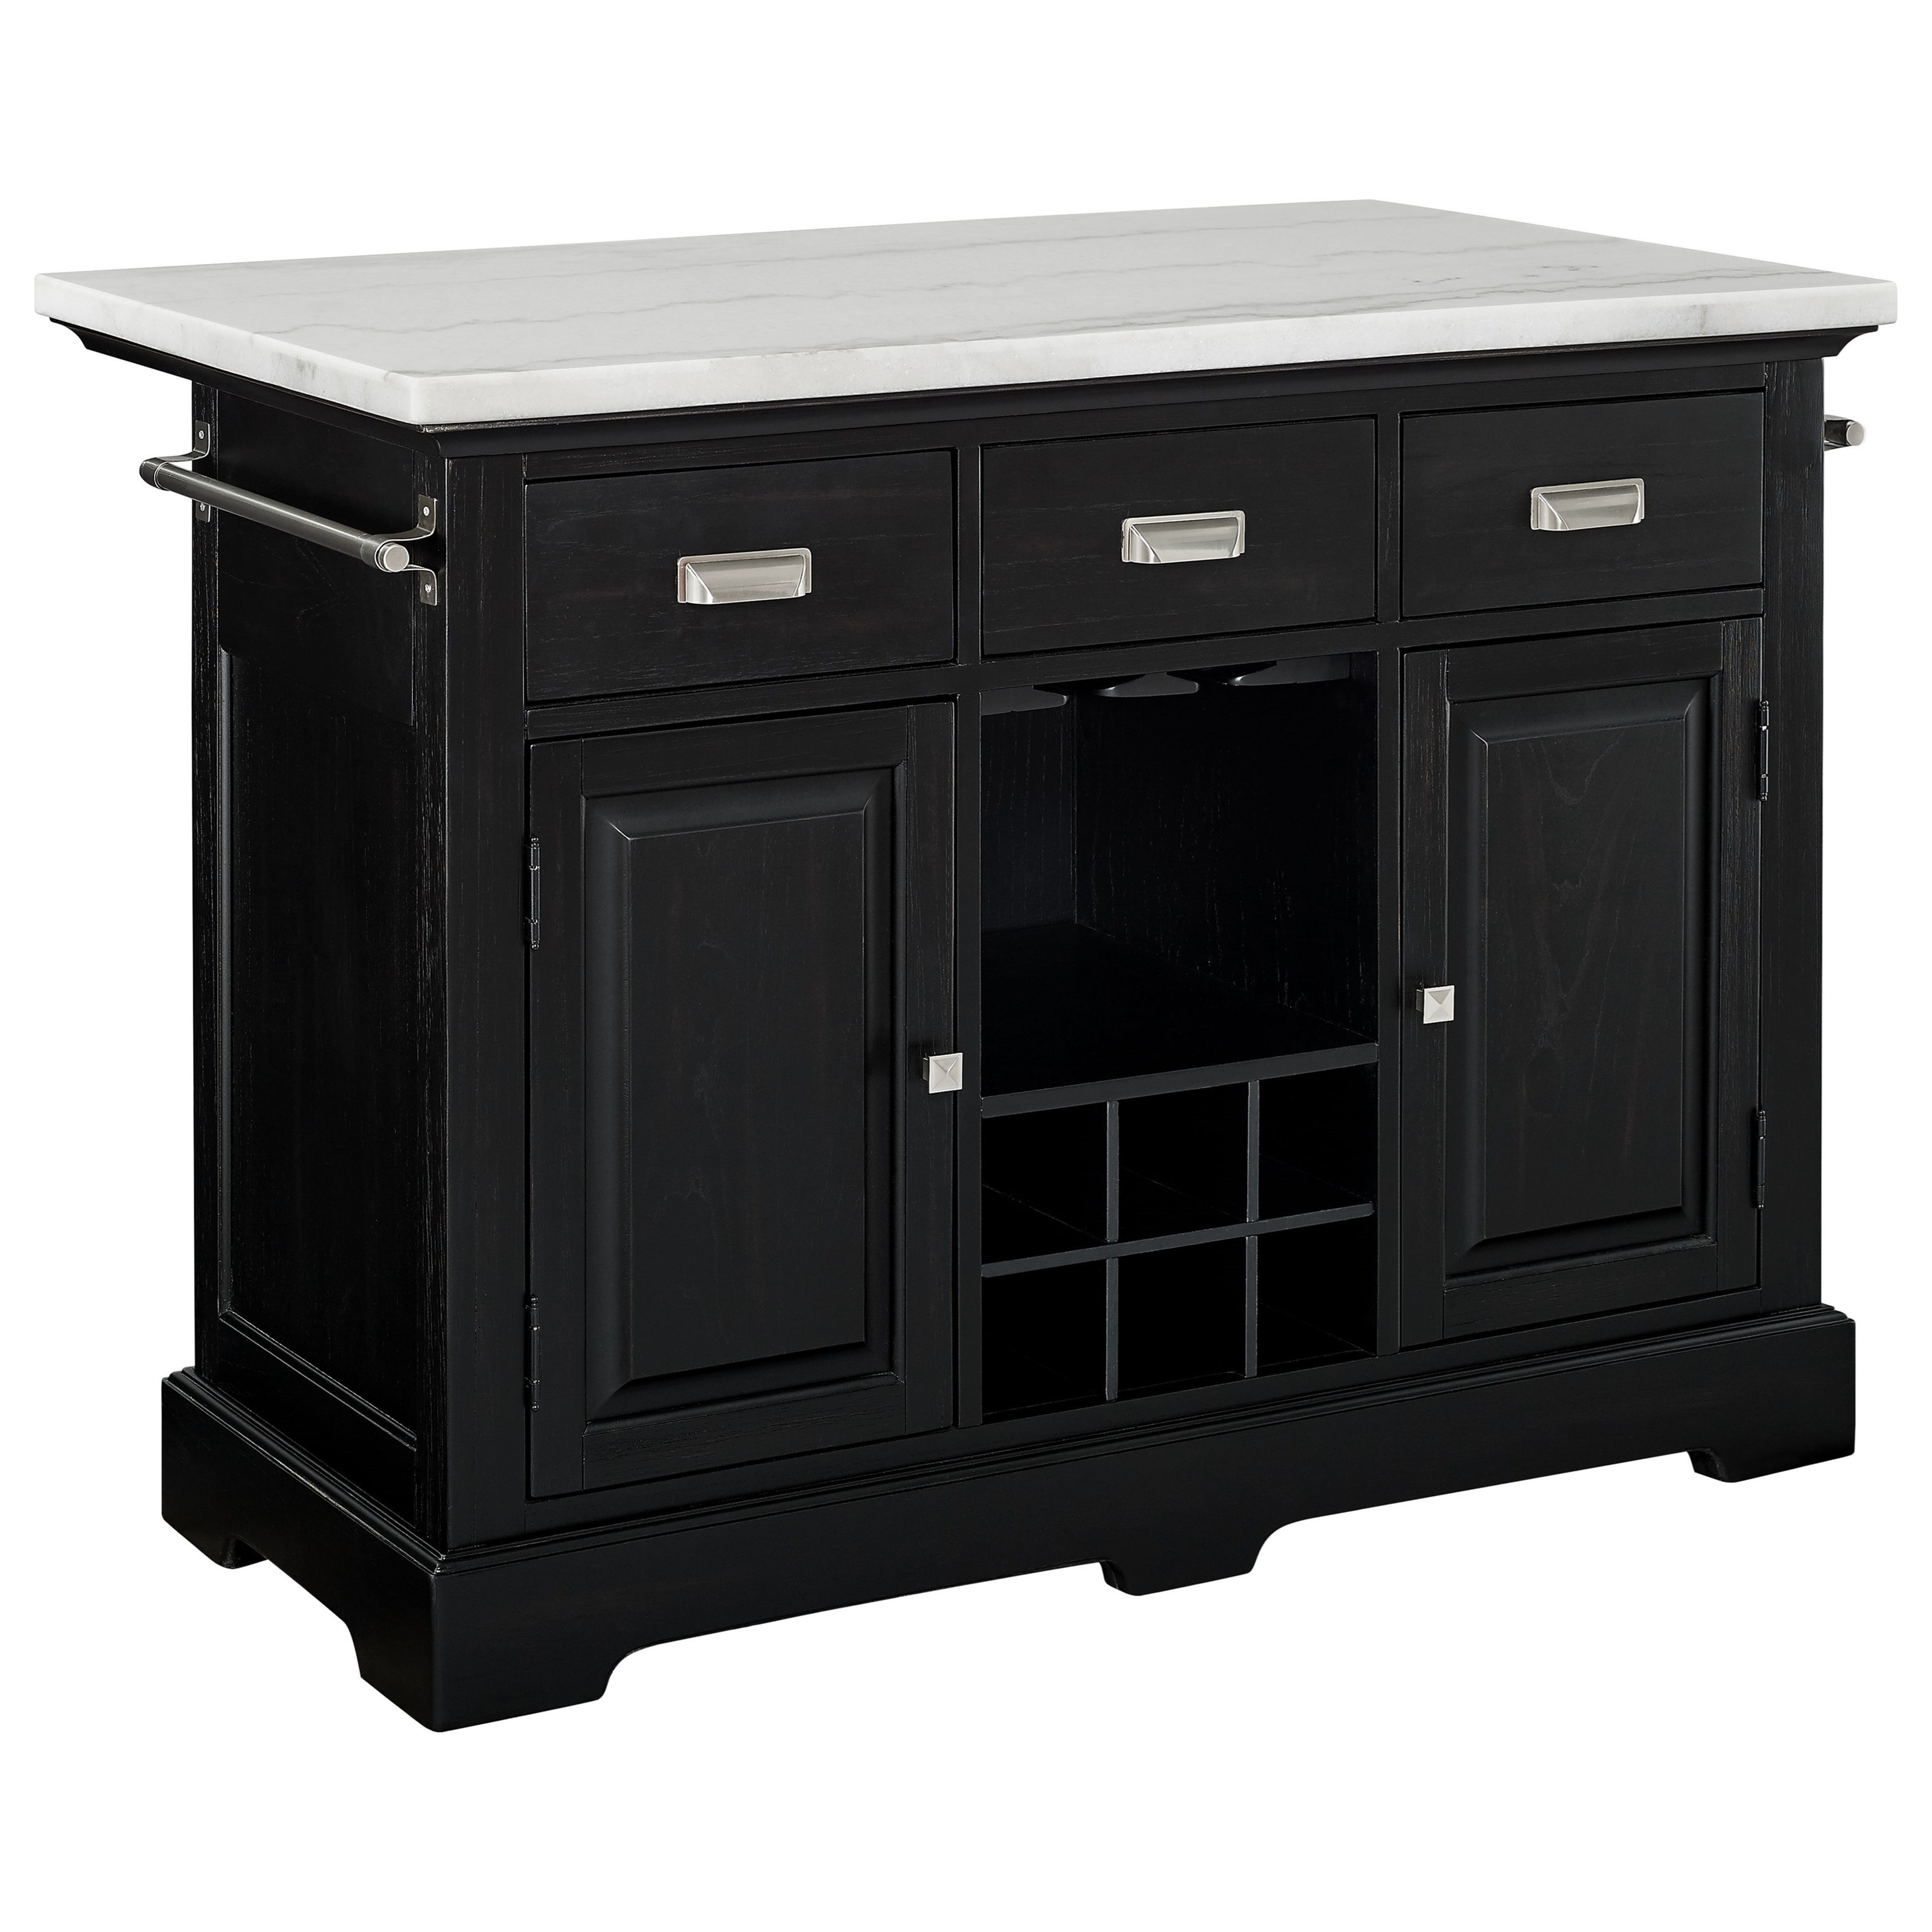 Aspen Kitchen Island by Steve Silver at Northeast Factory Direct